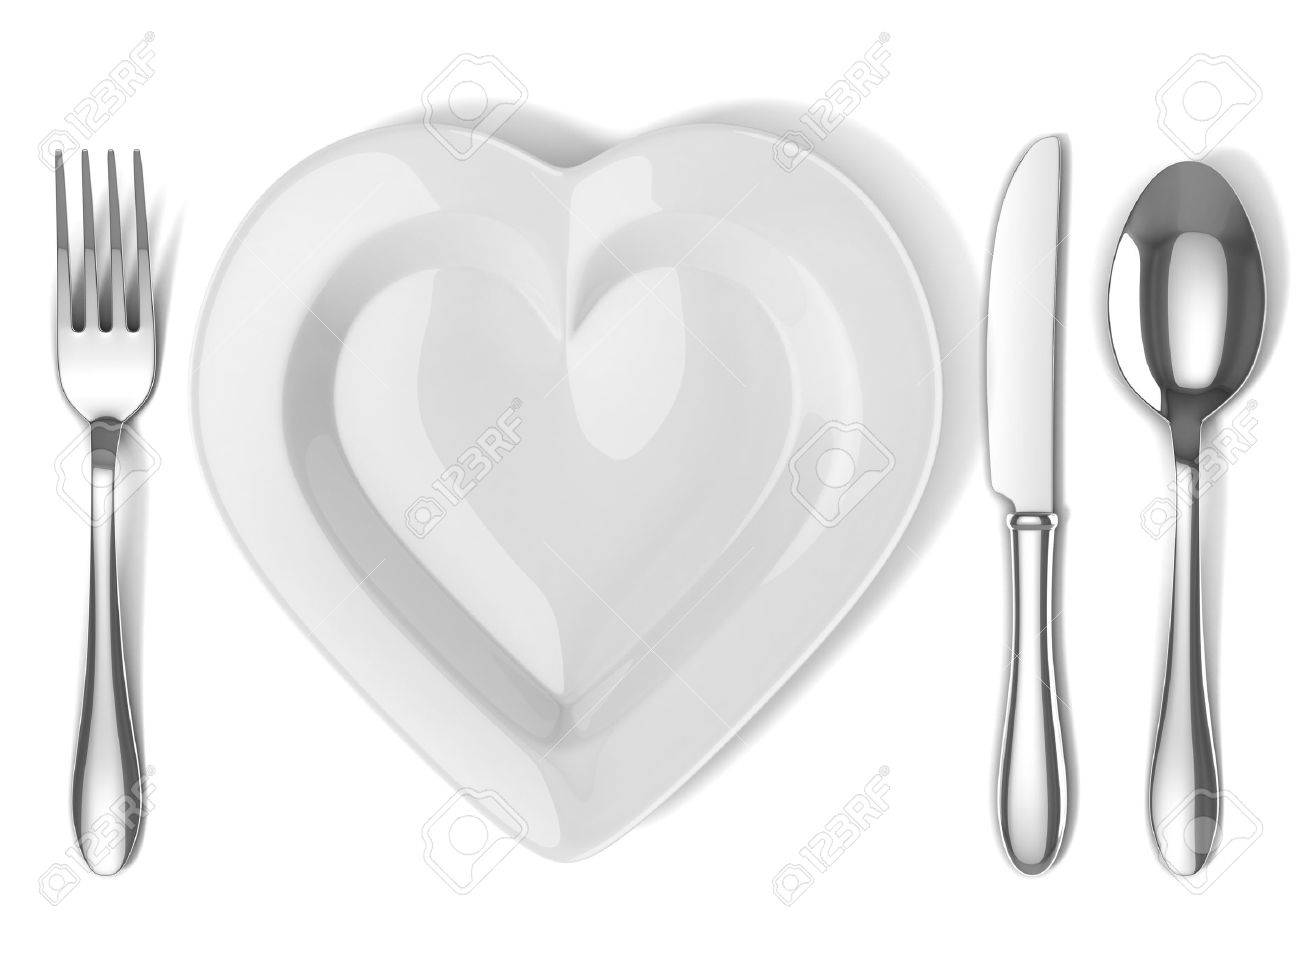 heart shaped plate with silverware Stock Photo - 12319700